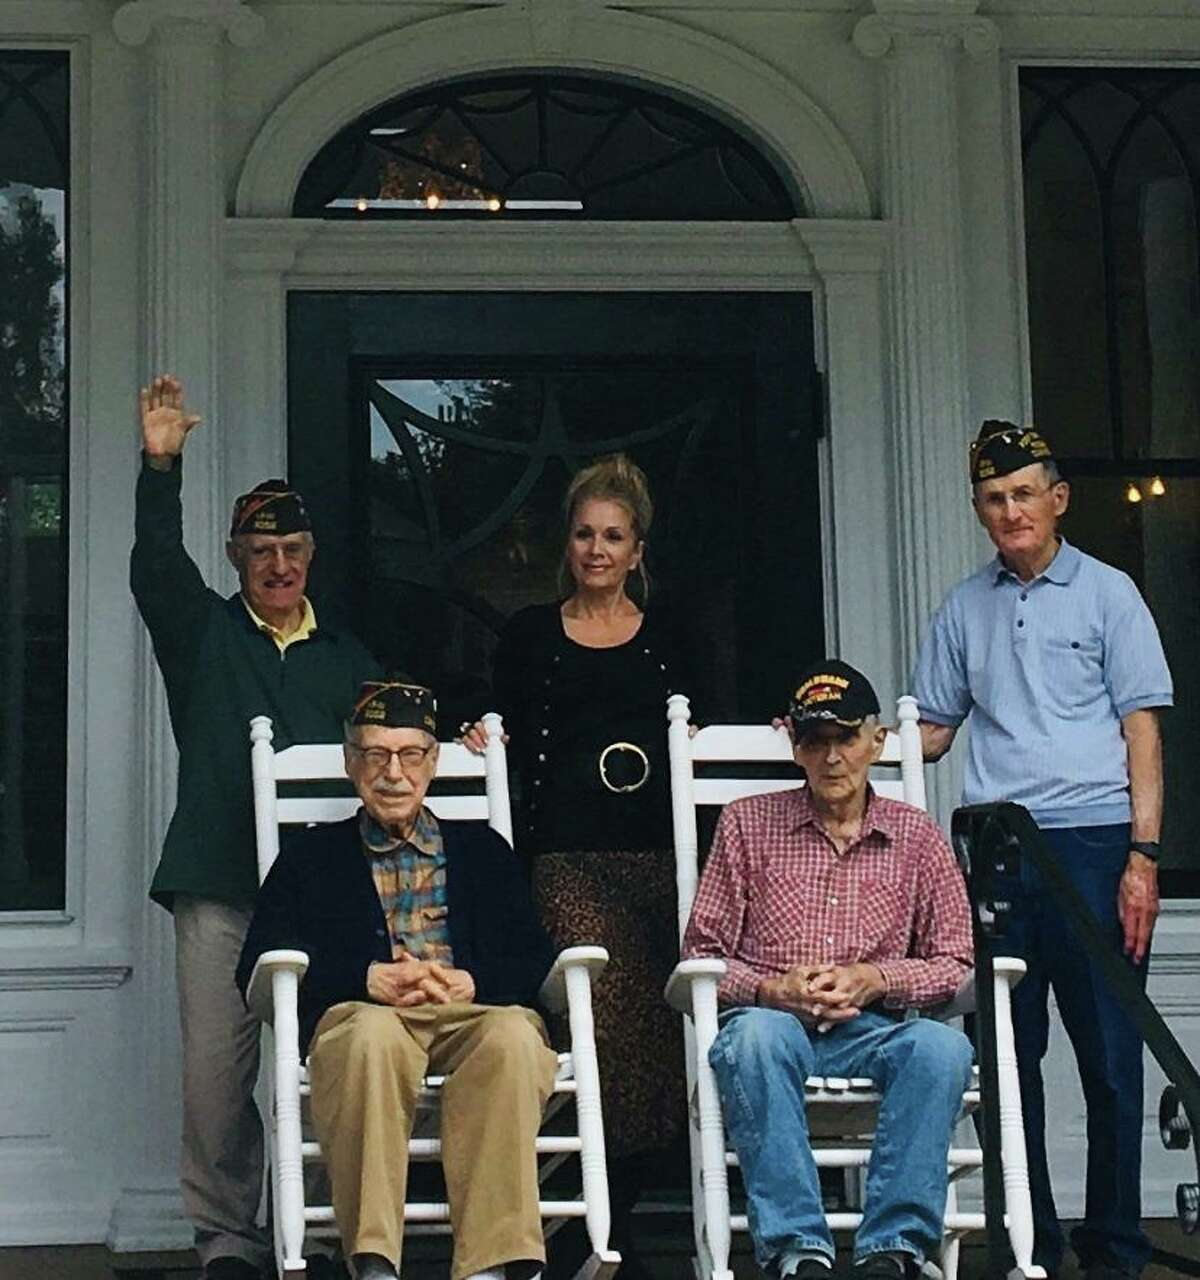 Seated, from left to right: Wally Goodman and George Ventres. Standing, from left to right Dino Calabro, Suzanne Bellagamba Brennan, and Gene Warden.